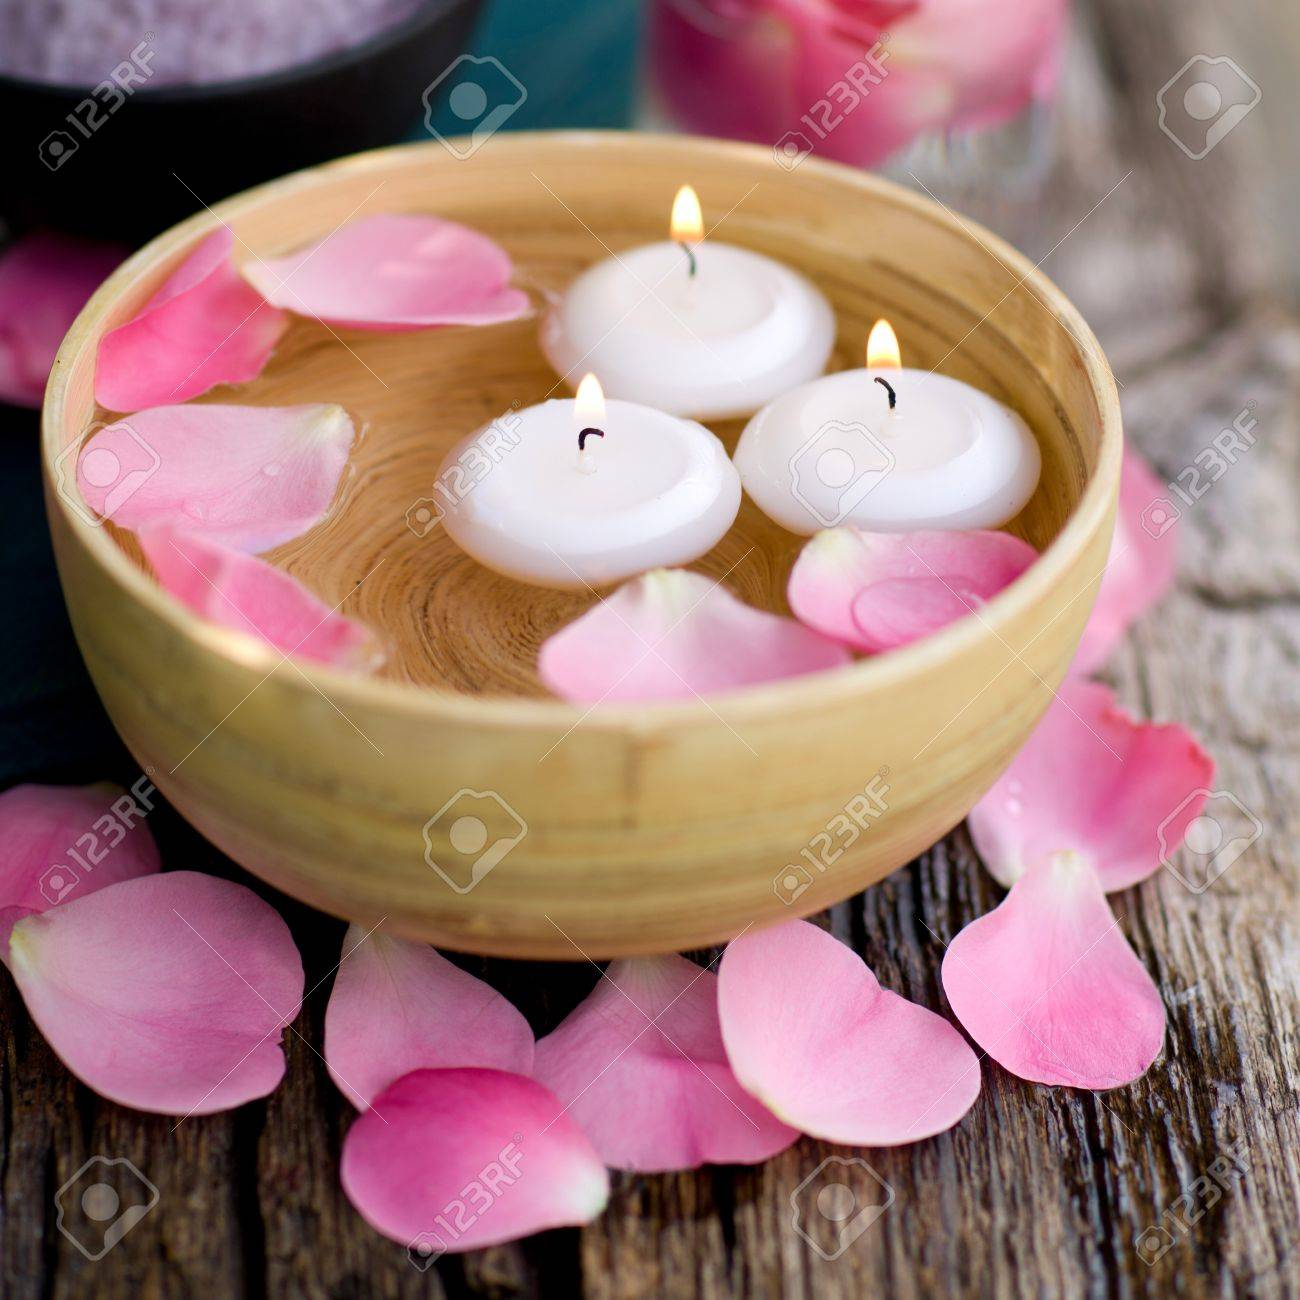 Wellness symbols with candles Stock Photo - 14929946